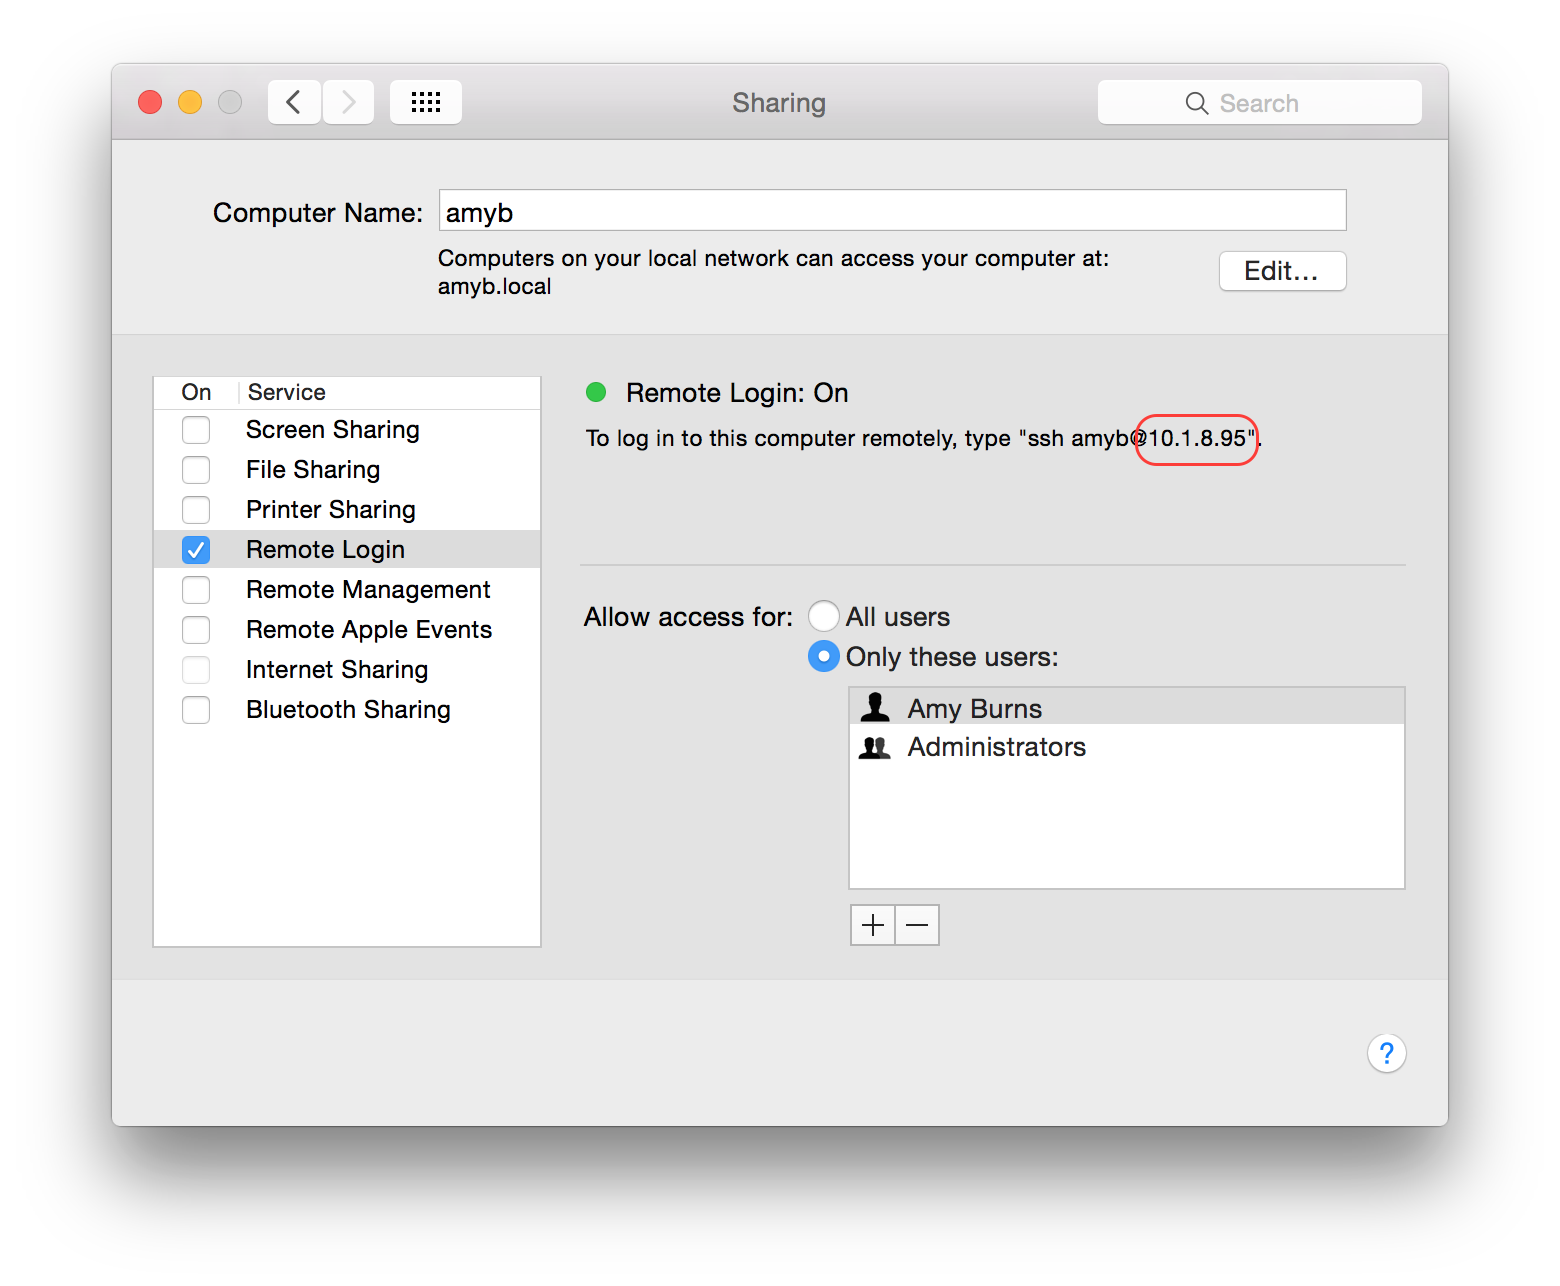 Xcode compress png files error. Connection troubleshooting for a